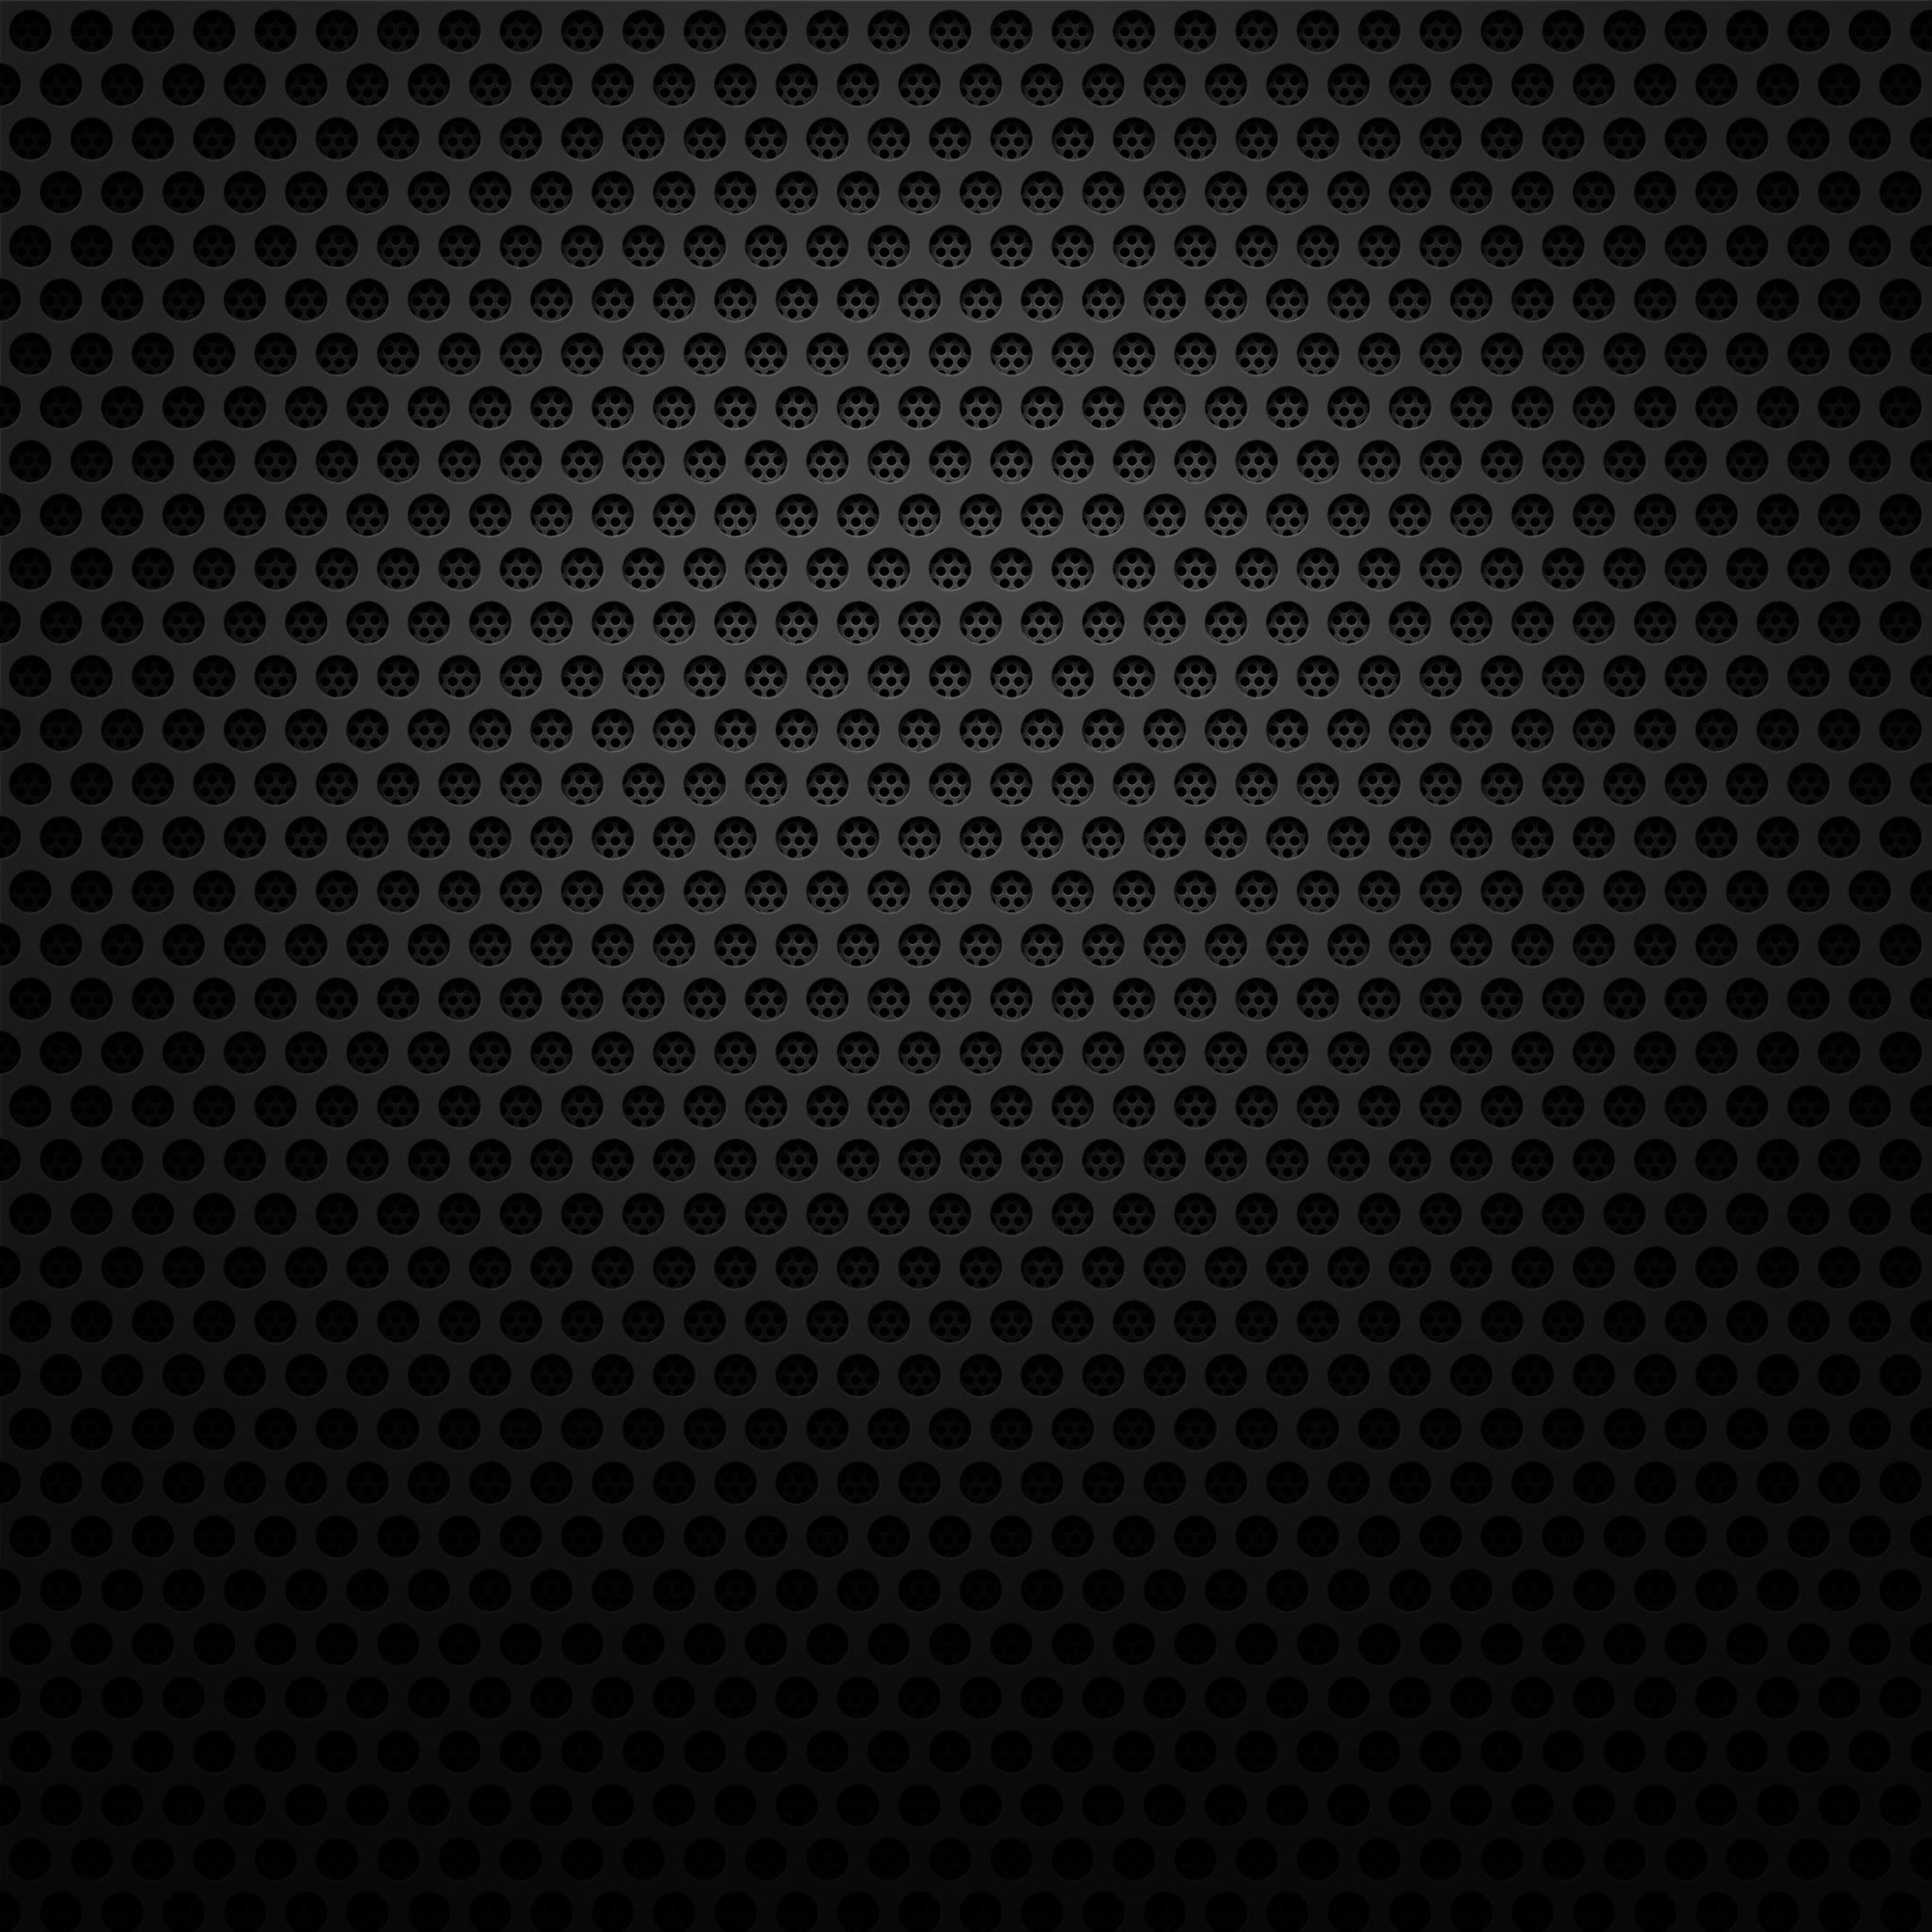 Black Hole iPad Air wallpaper